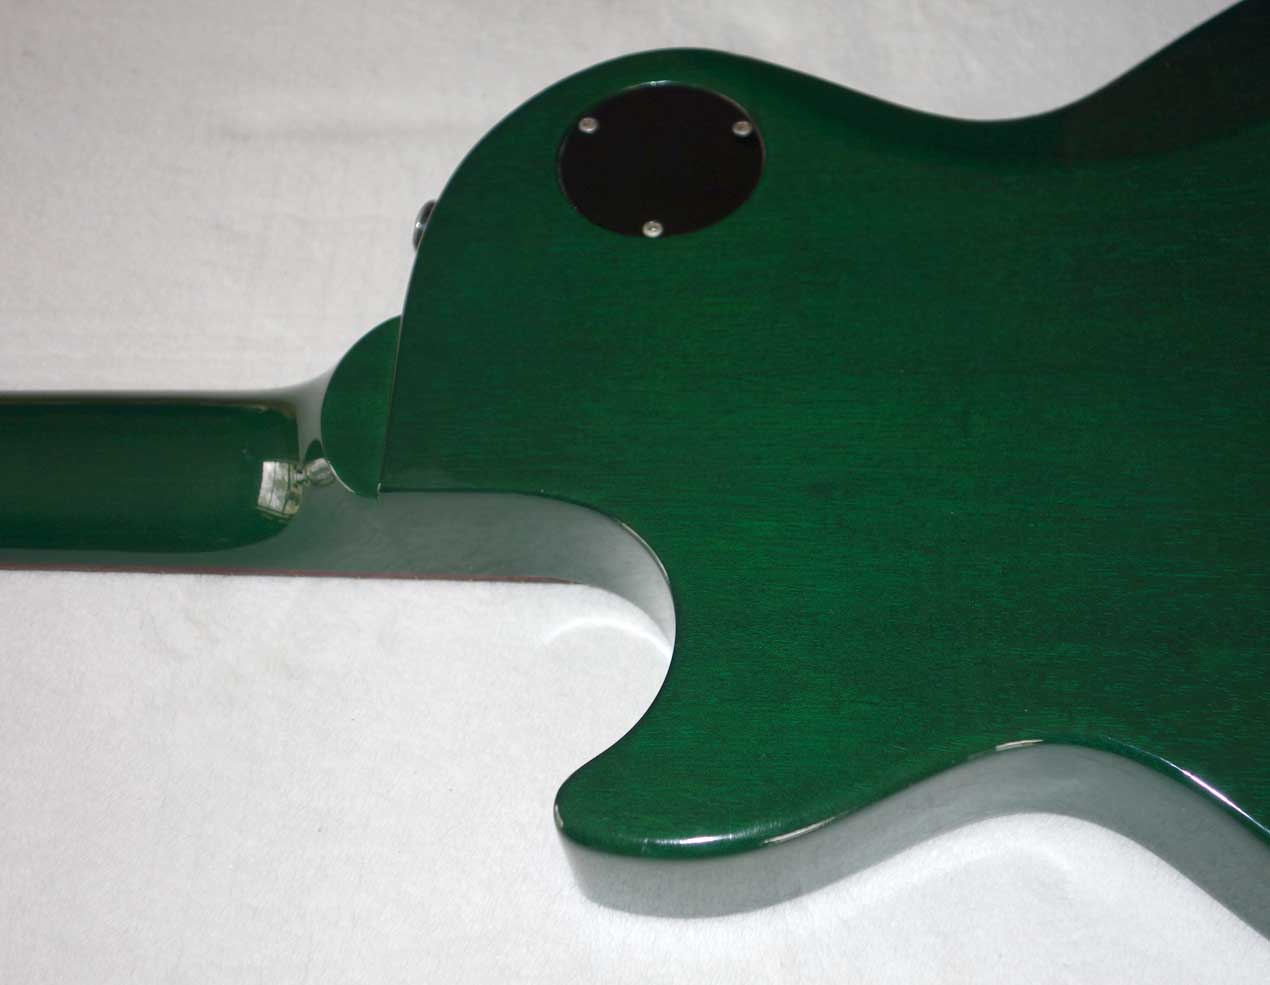 Used 1998 Gibson Les Paul Junior Special w/Rare Translucent Green Finish, Softshell Gig Bag